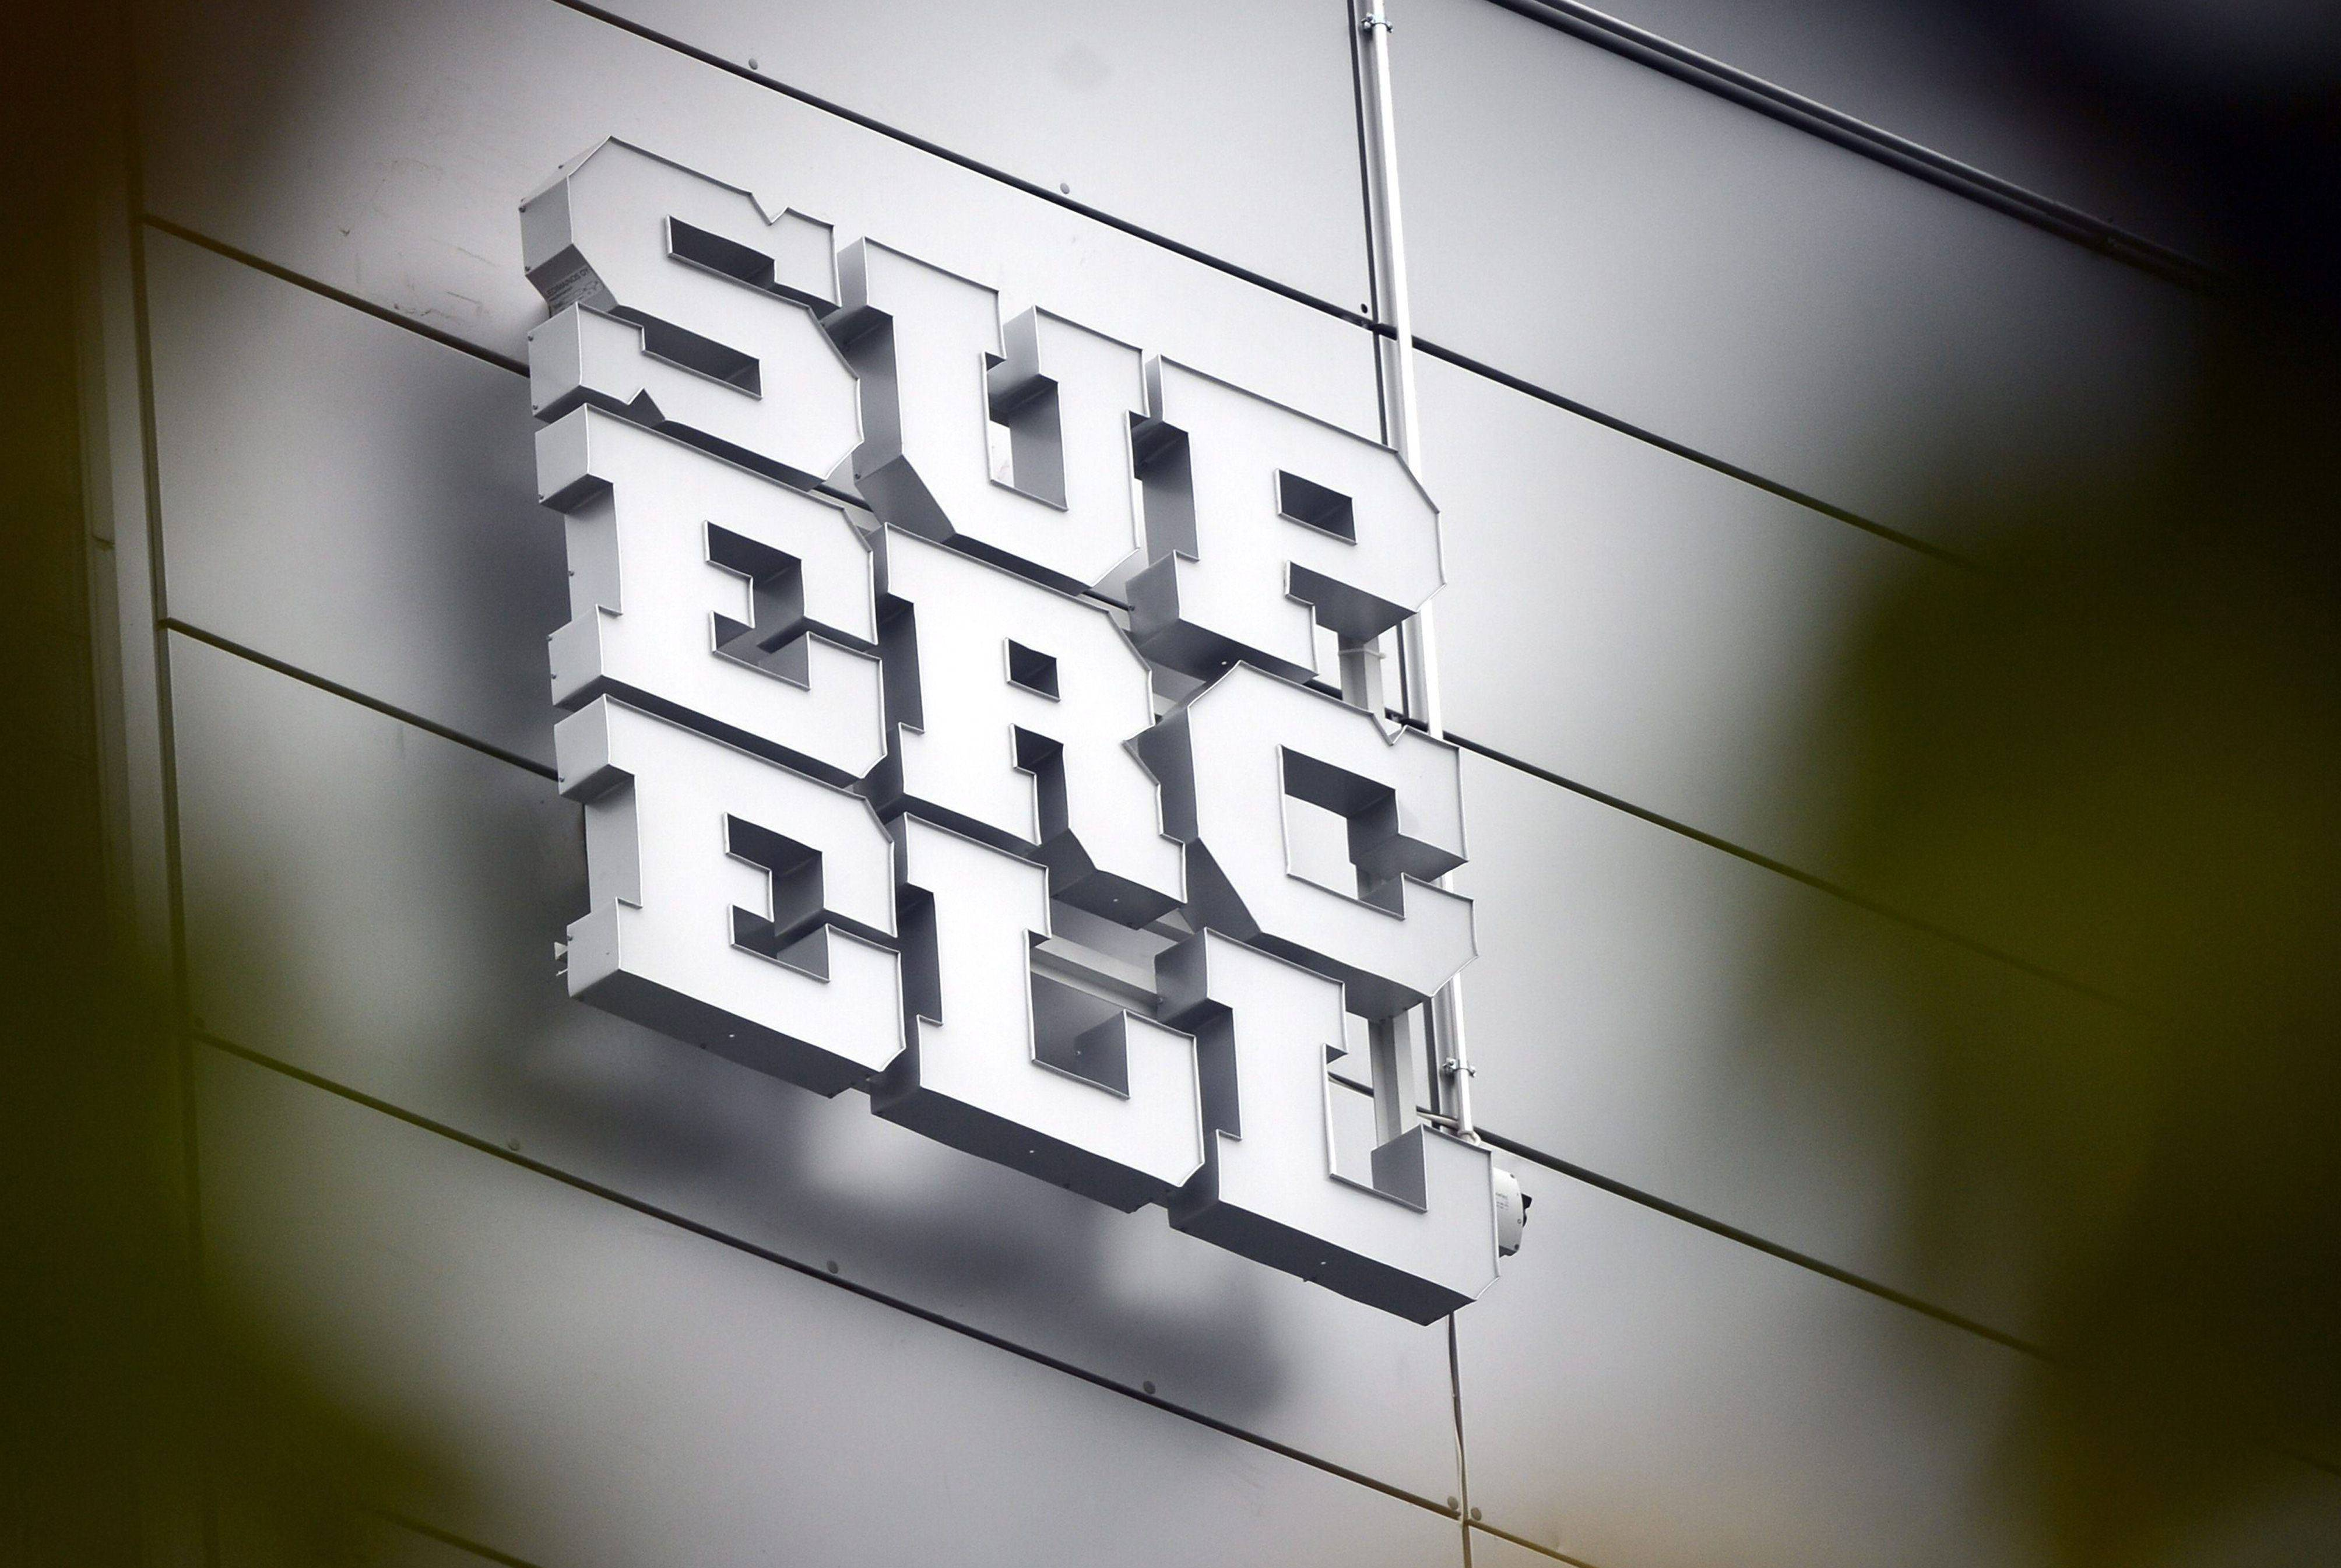 The logo of Finnish computer game maker Supercell is pictured at the companys head office in Helsinki on October 15, 2013. Finnish computer game maker Supercell has sold control of the company for 1.1-billion-euro ($1.5 billion) to two Japanese investors, SoftBank and GungHo, the Helsinki-based company announced on its website on October 15, 2013. AFP PHOTO /Lehtikuva/ KIMMO MANTYLA FINLAND OUT